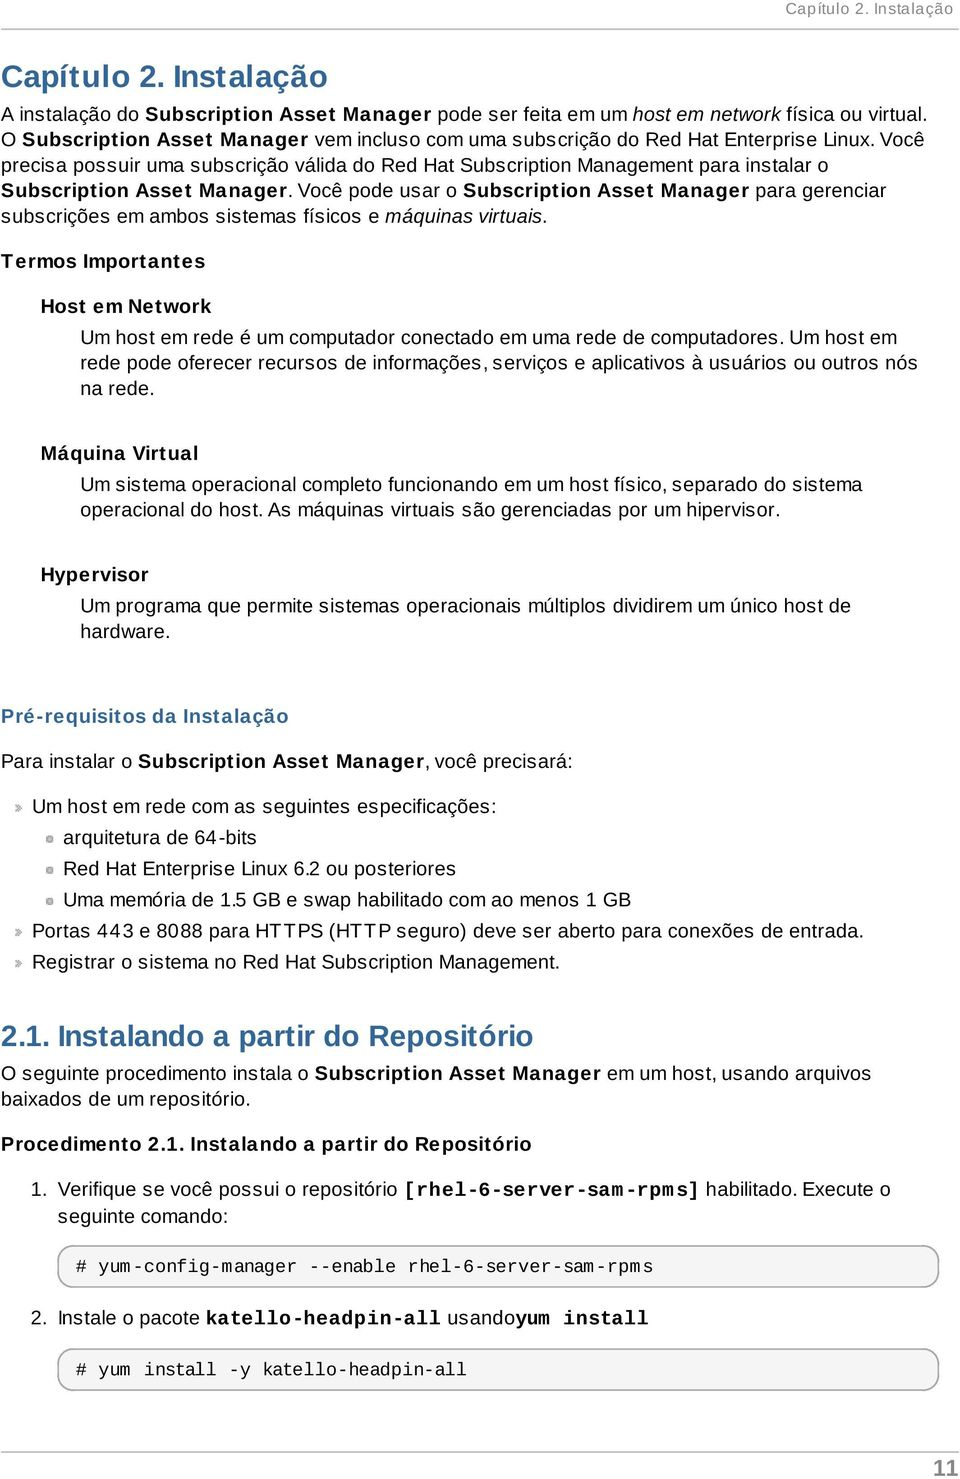 Você precisa possuir uma subscrição válida do Red Hat Subscription Management para instalar o Subscription Asset Manager.